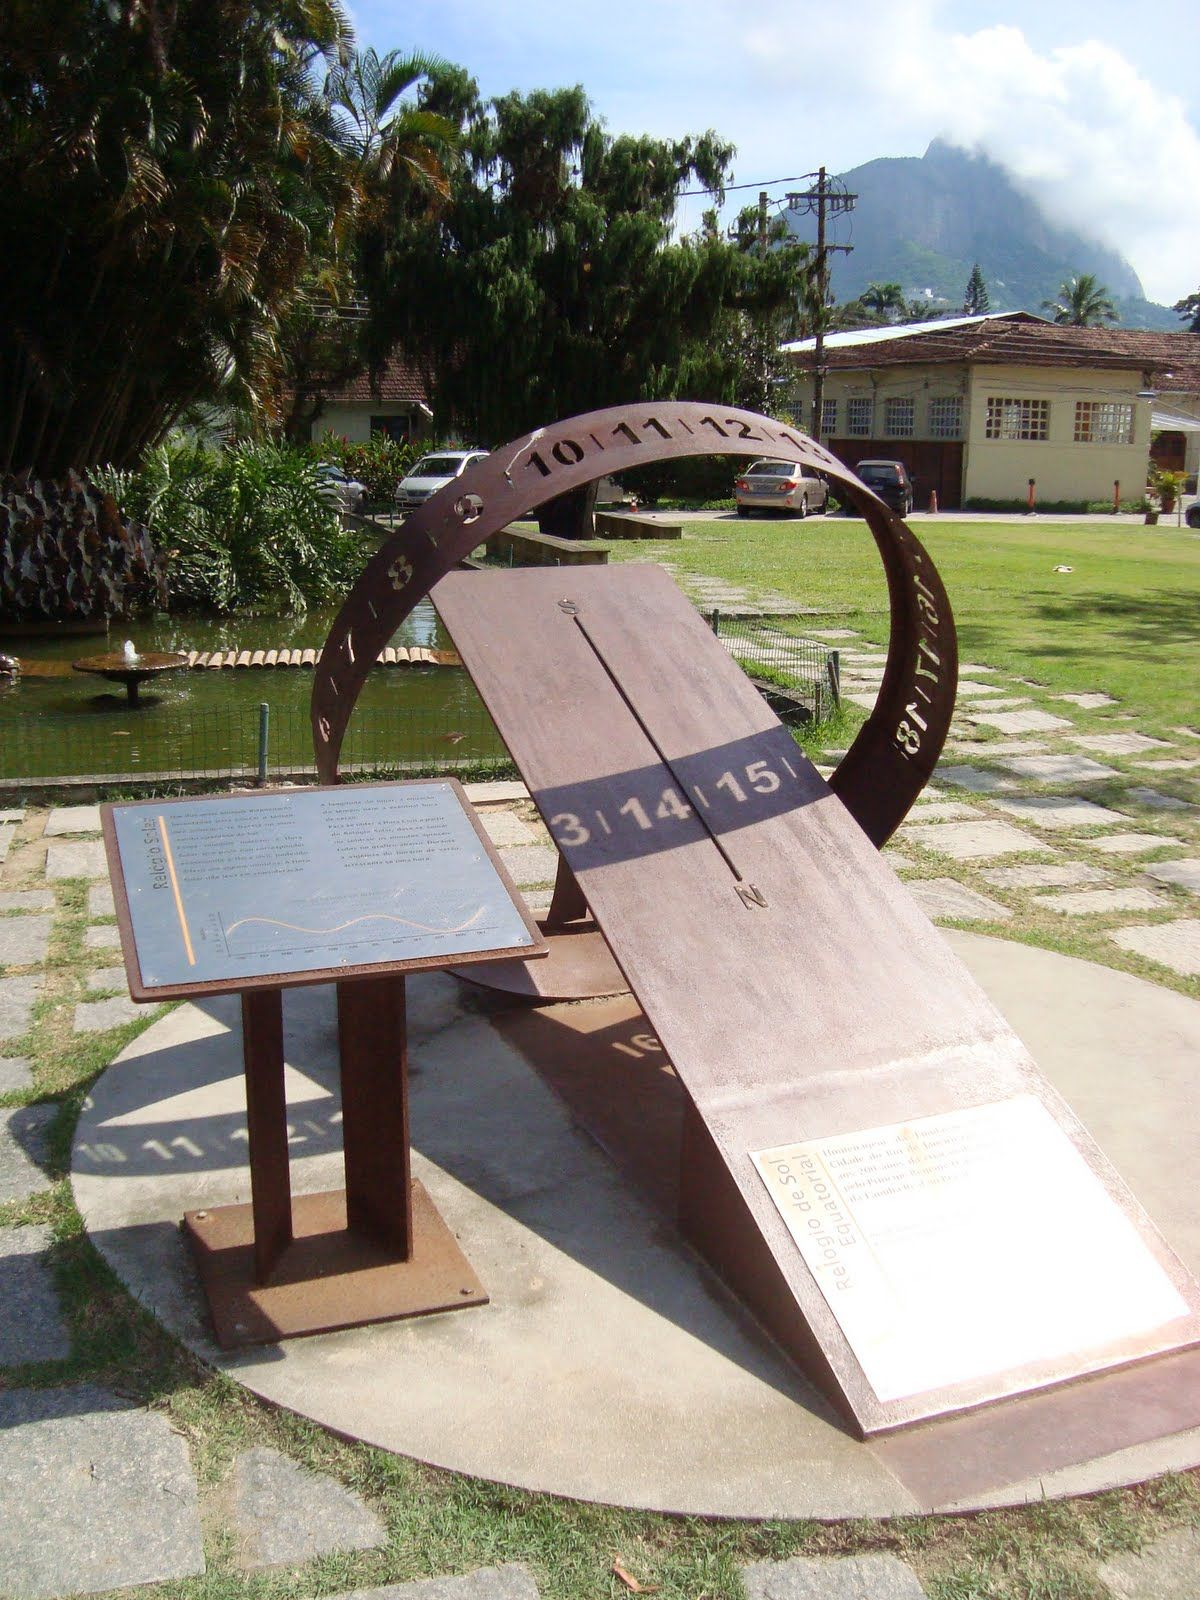 Idea for garden sculpture? Sun clock sundial - maybe replace center with sculpture to reflect time? wonder how to make? How space curved numbers on curved metal? Maybe Make curved cardboard template ?